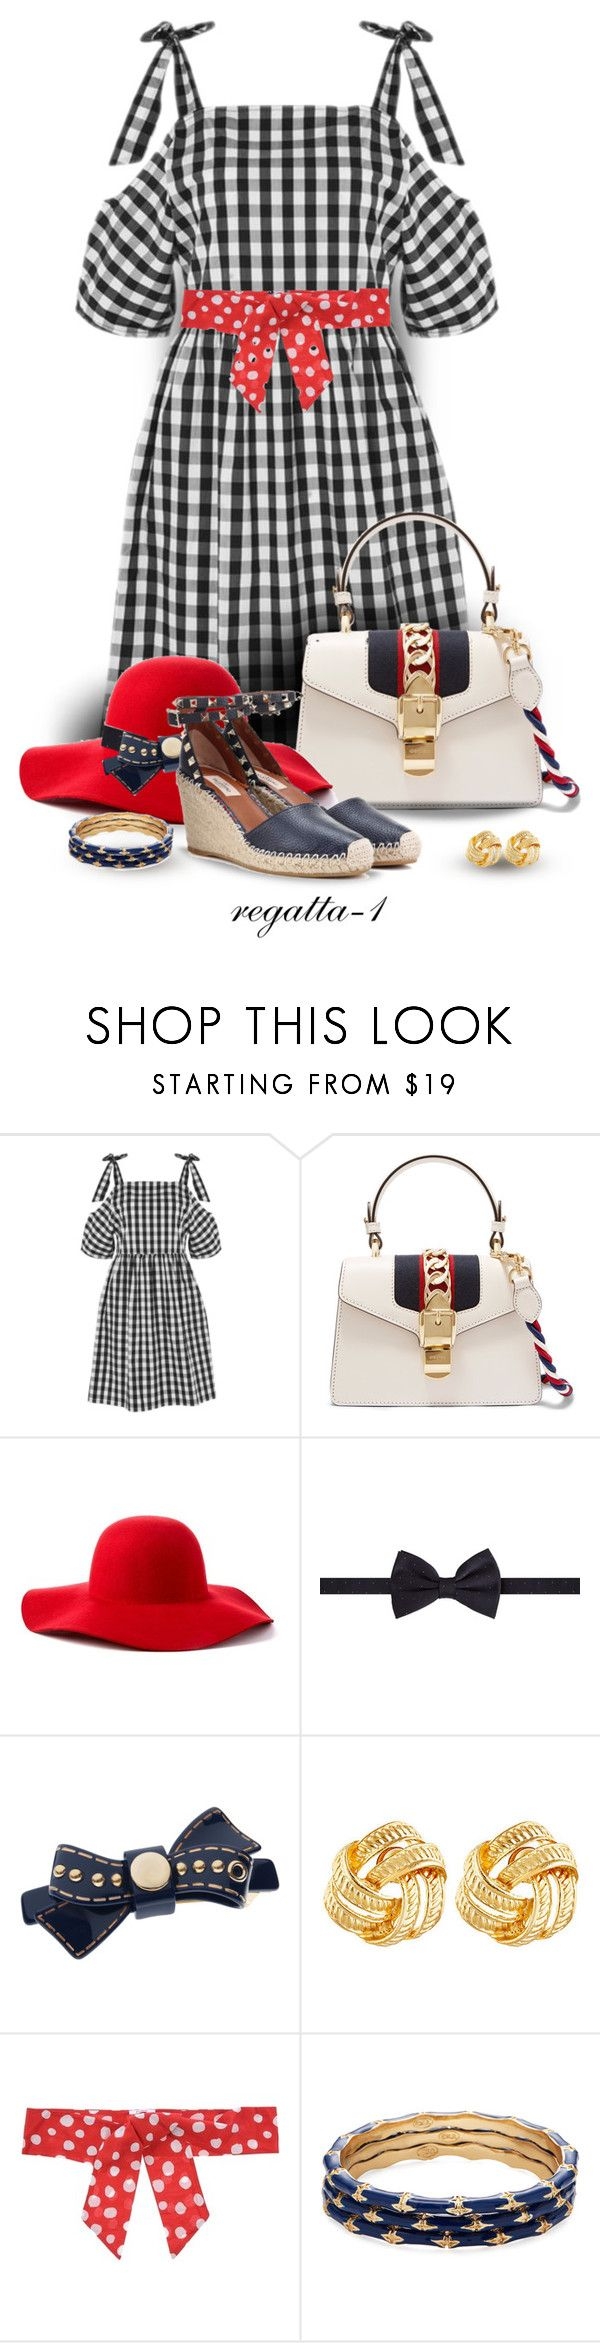 """Gingham Dress"" by regatta-1 ❤ liked on Polyvore featuring Topshop, Gucci, Scala, Diverso, L. Erickson, Susan Shaw, Blugirl Folies, Kenneth Jay Lane and Valentino"